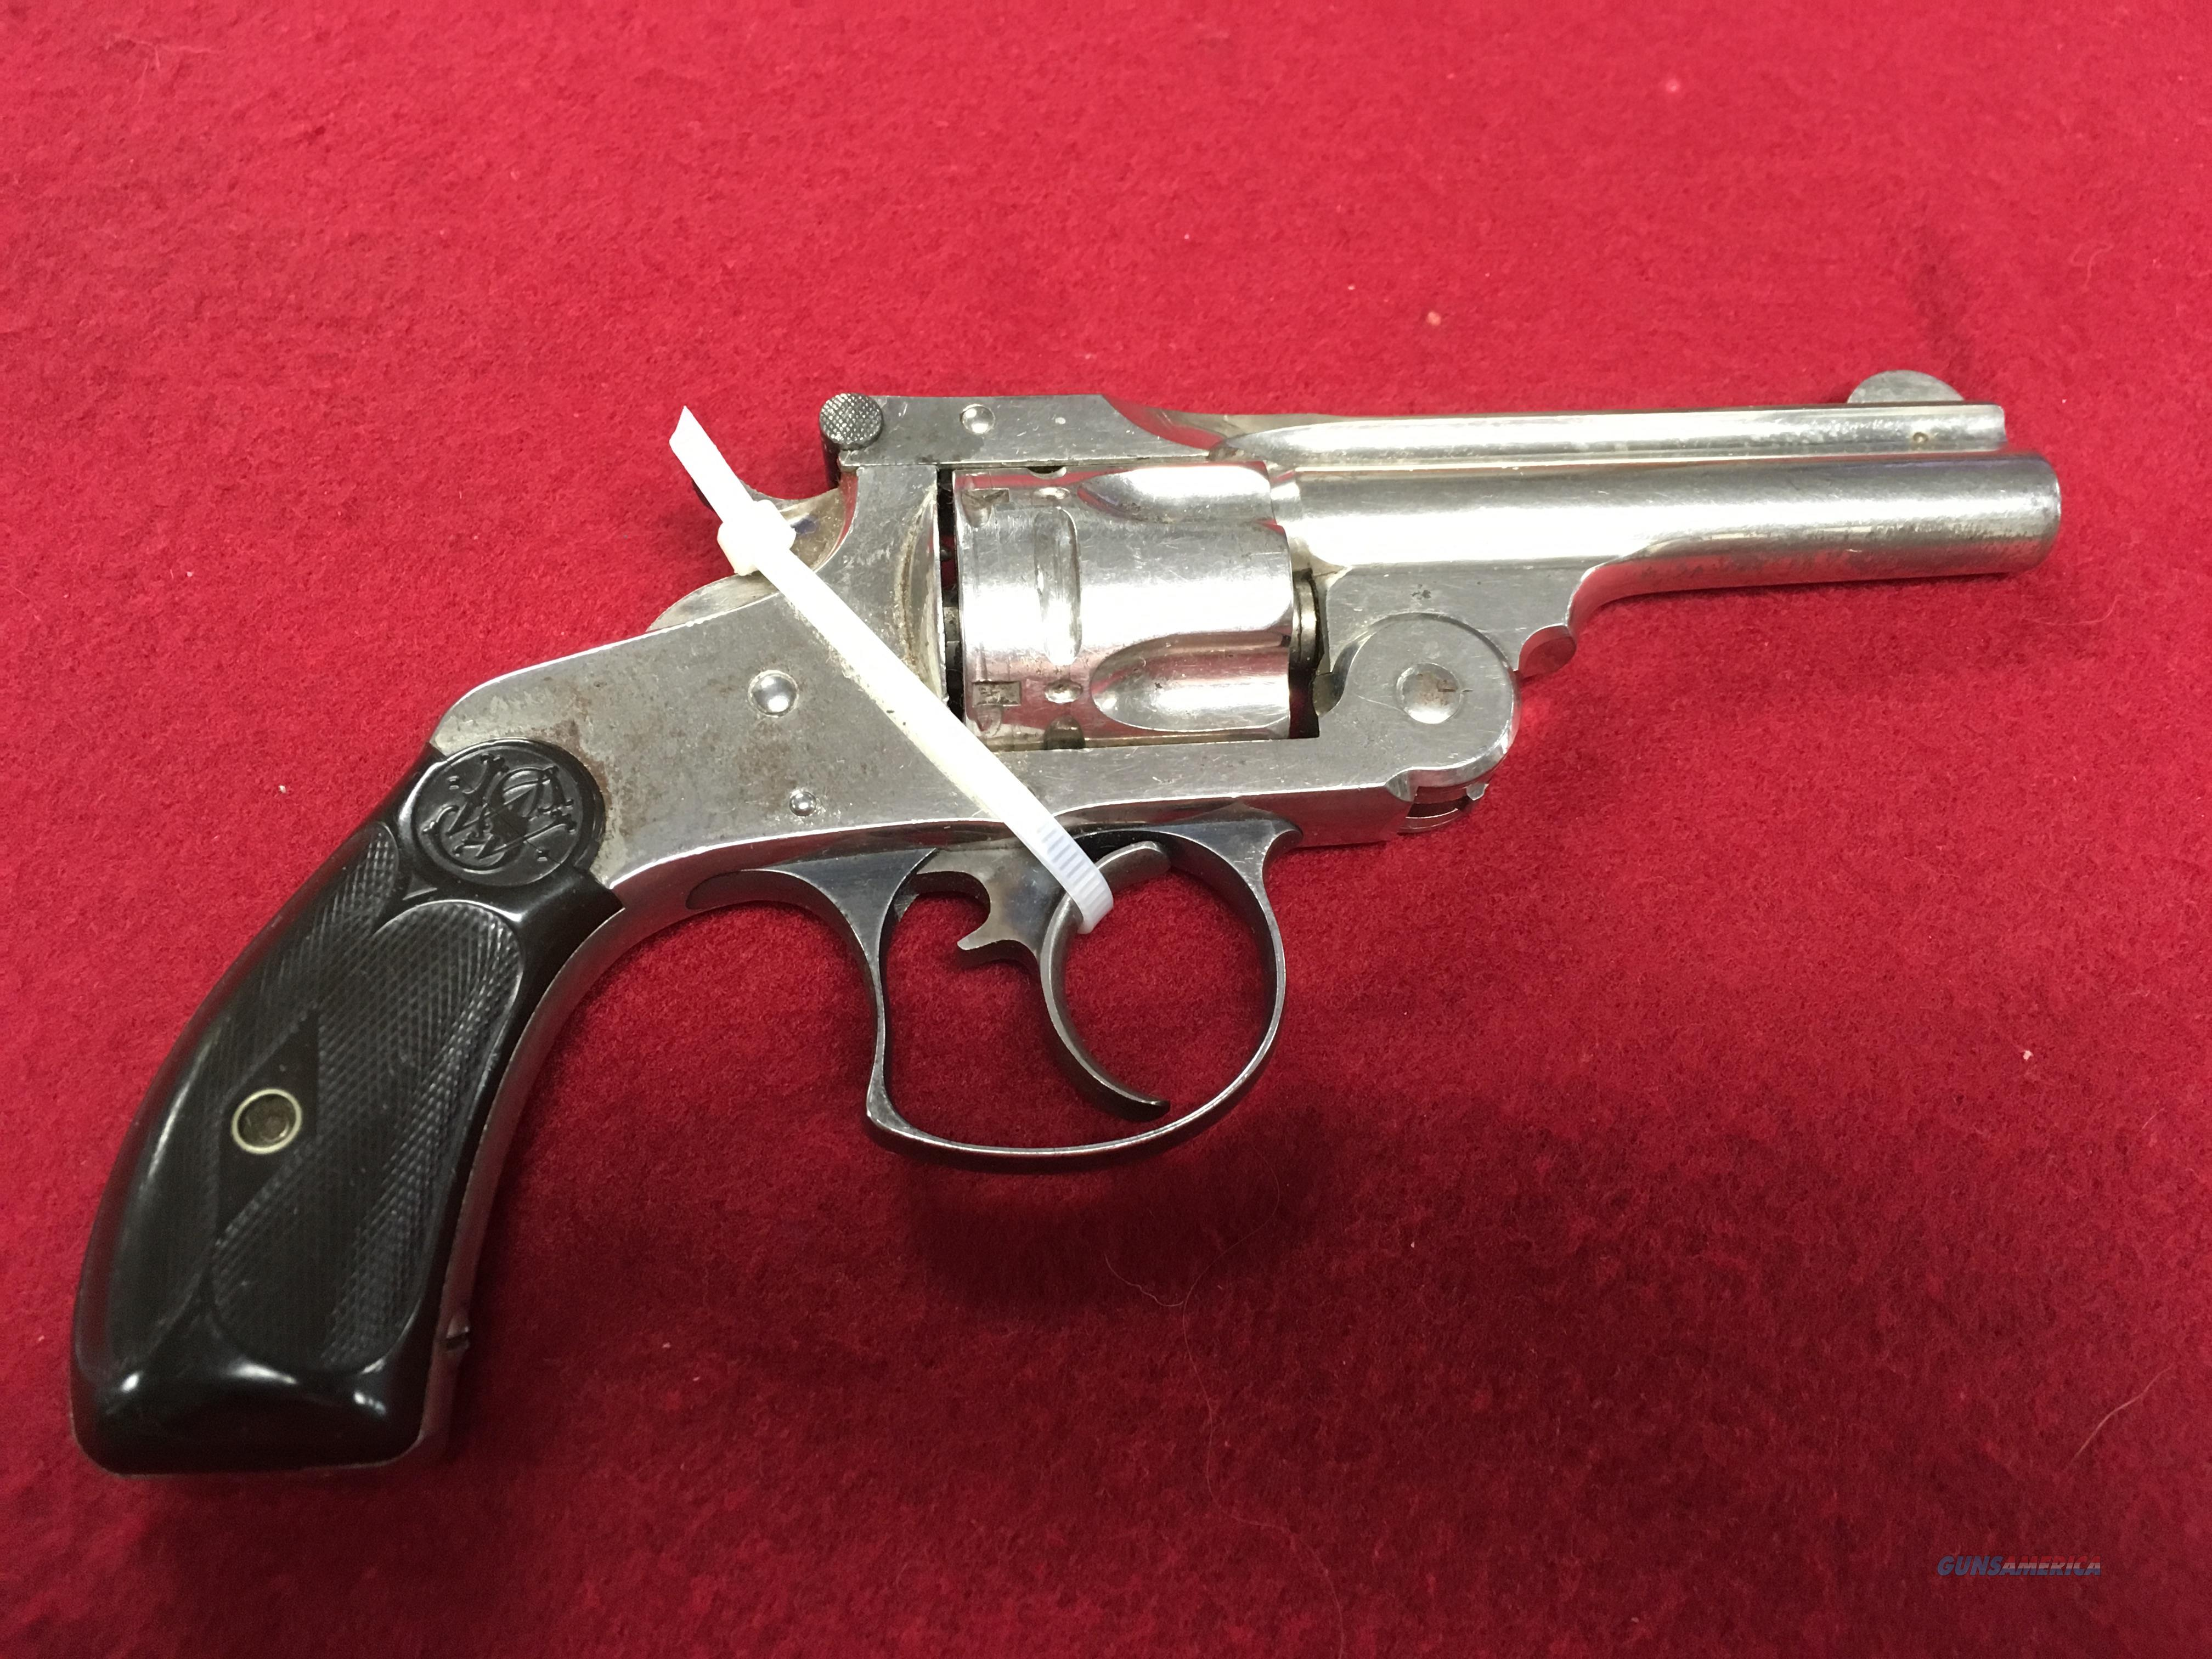 SMITH & WESSON 38 DOUBLE ACTION 2ND MODEL  Guns > Pistols > Smith & Wesson Revolvers > Pre-1899